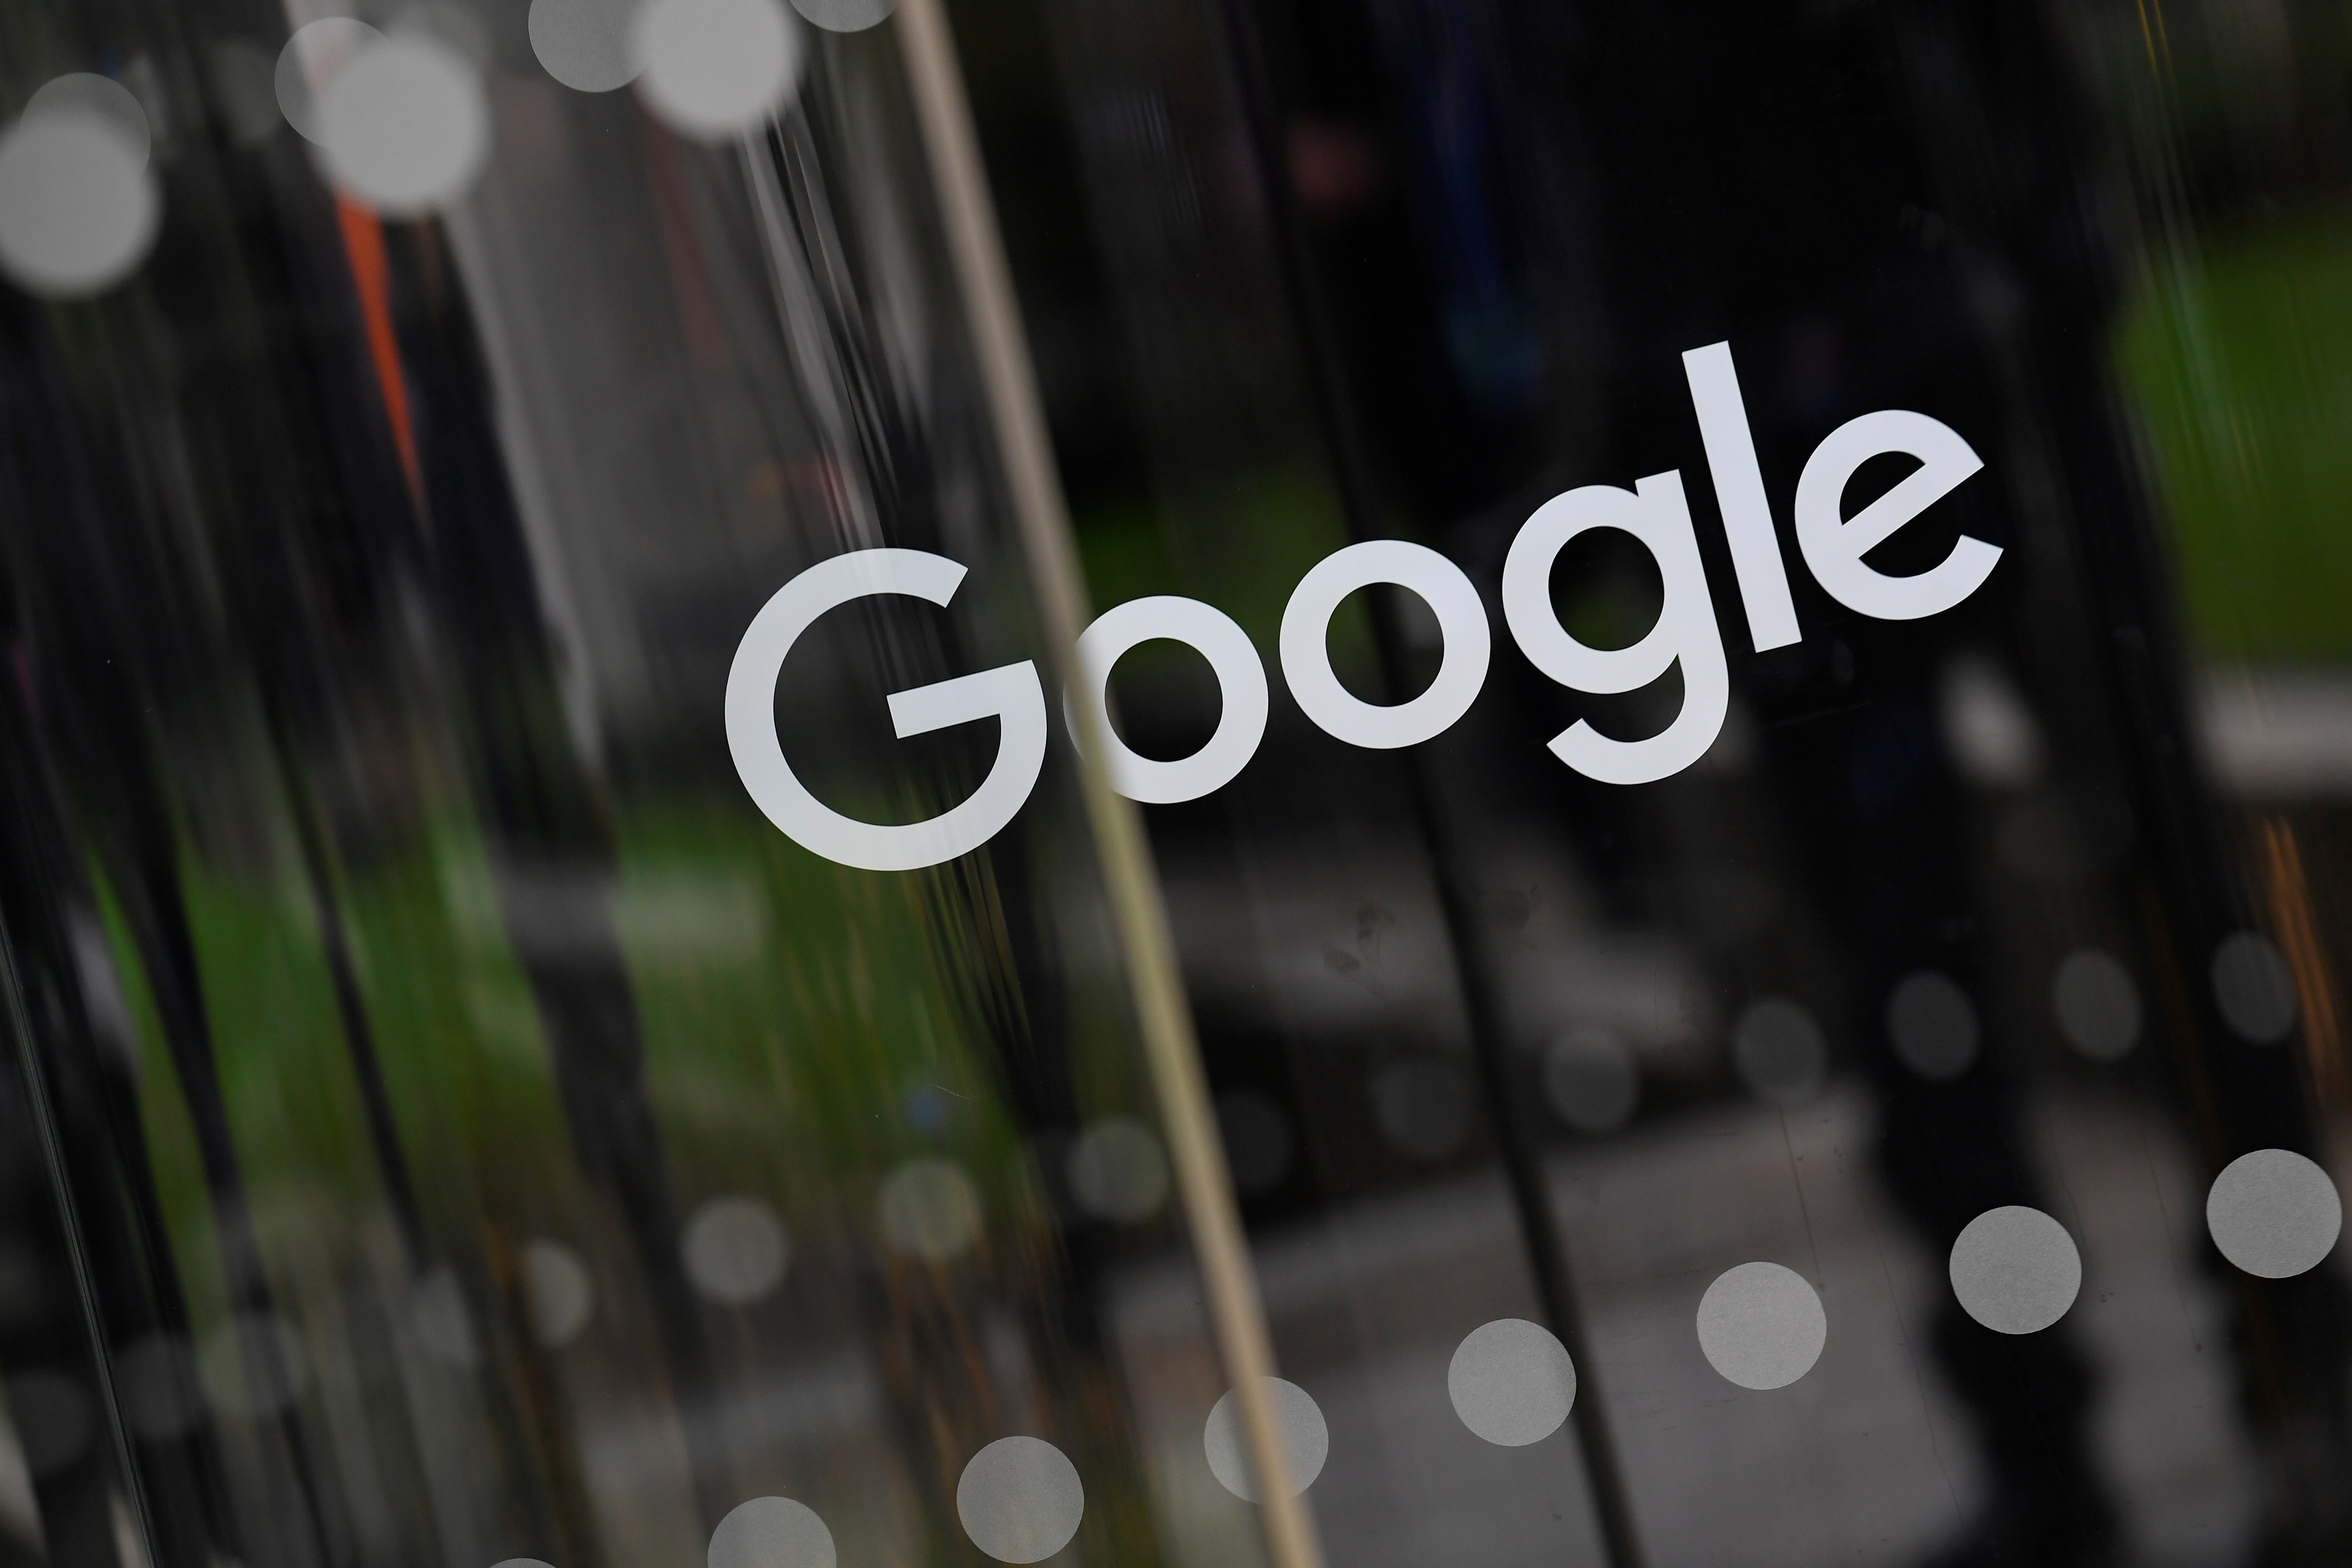 Fearful of bias, Google blocks gender-based pronouns from new AI tool